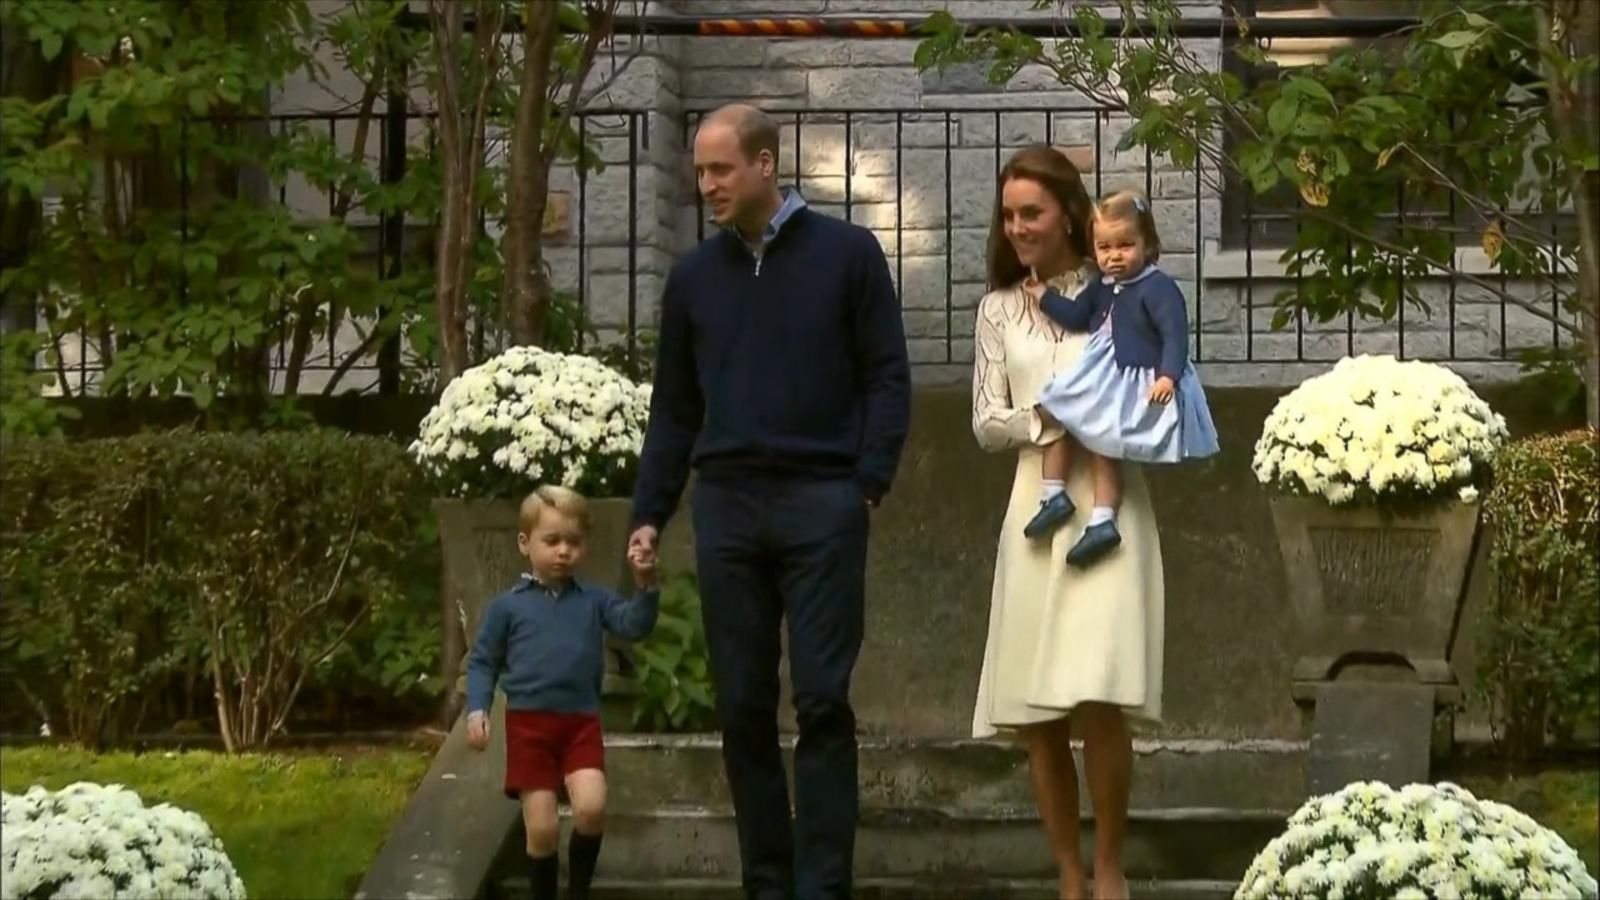 VIDEO: Prince George, Princess Charlotte Make Royal Appearance